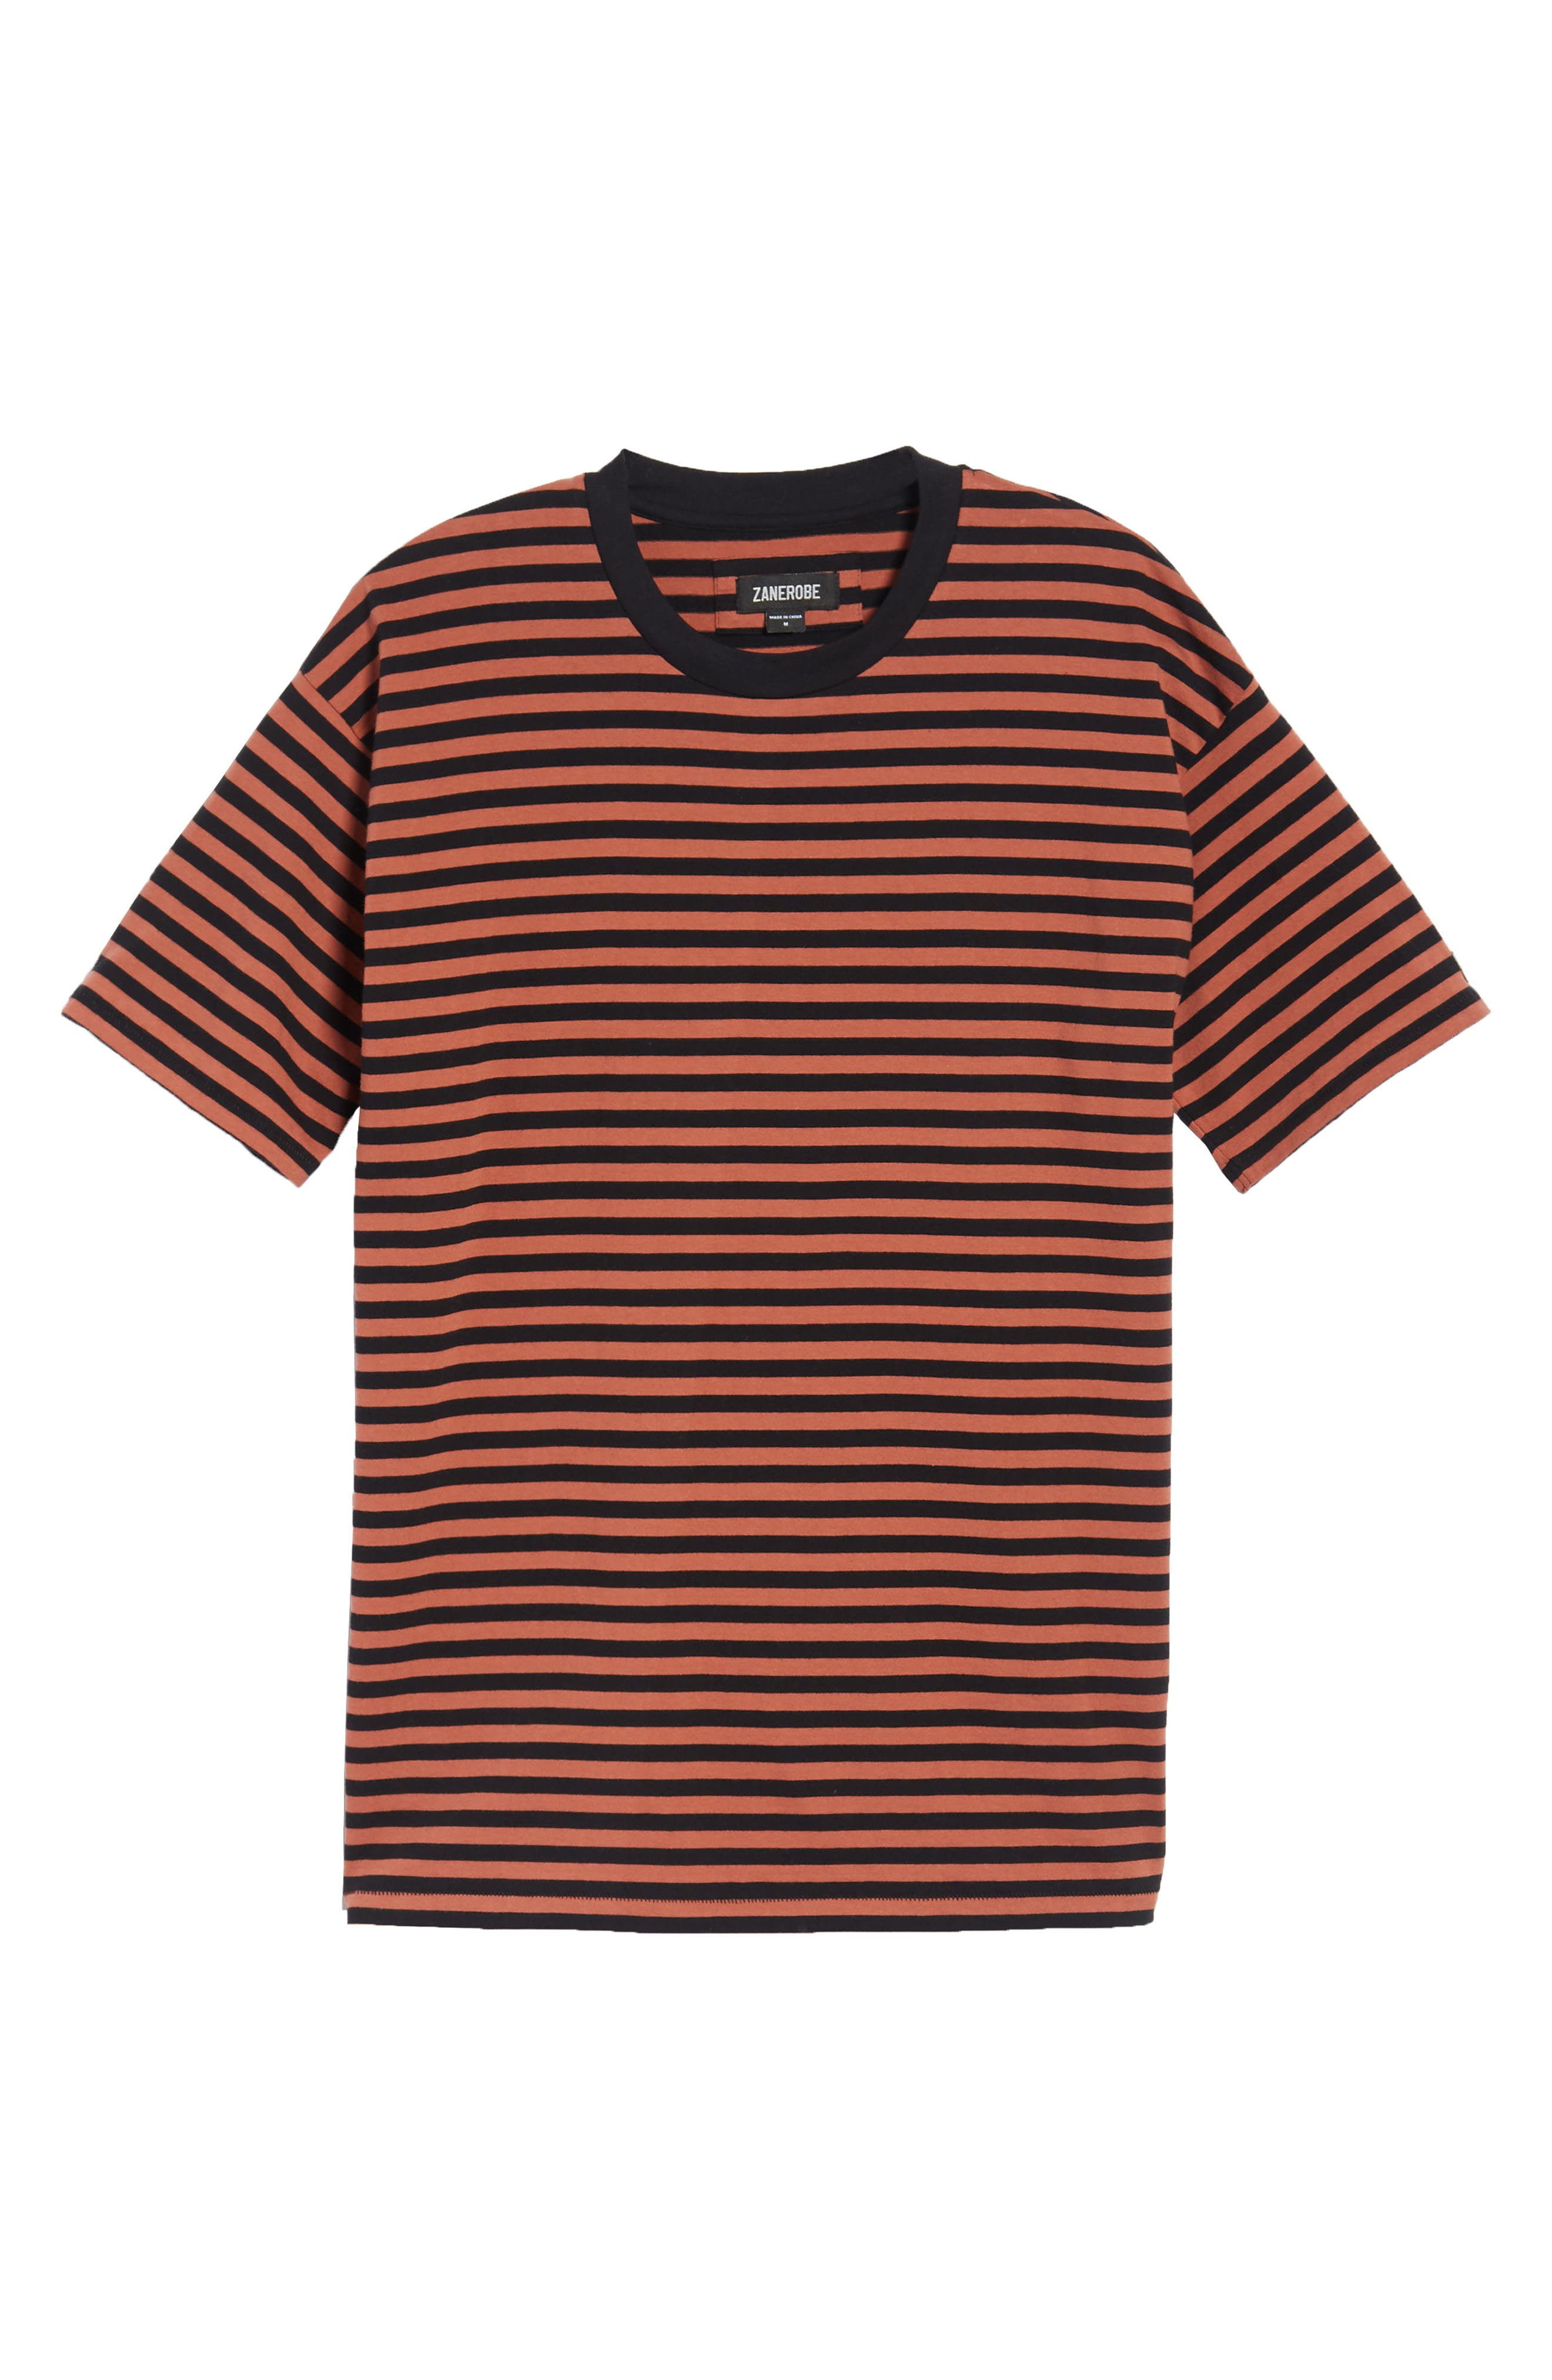 ZABEROBE Stripe Box T-Shirt,                         Main,                         color, Bronze/ Black